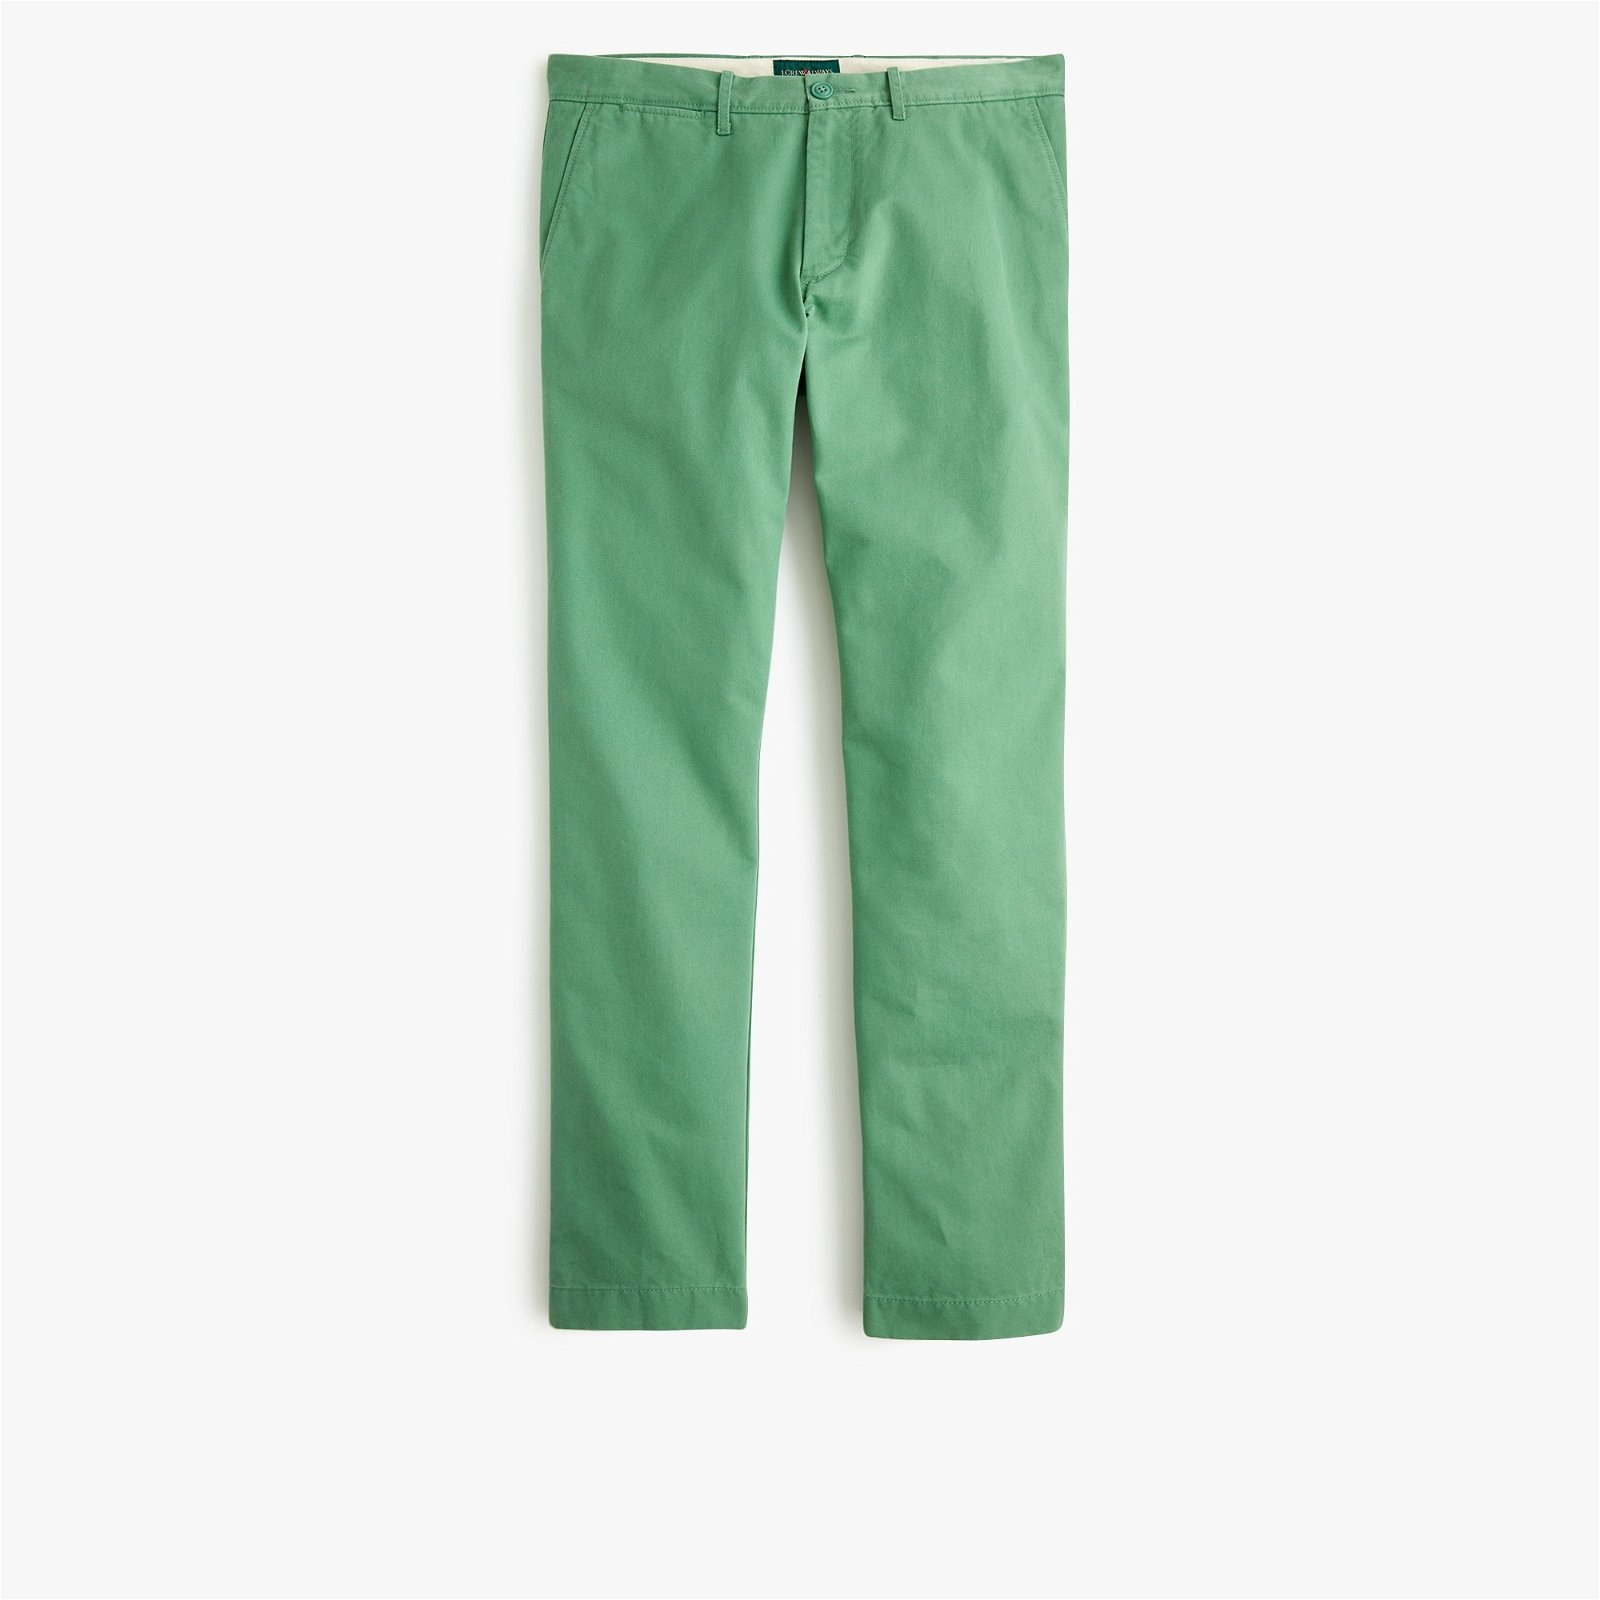 484 Slim-fit pant in Broken-in chino